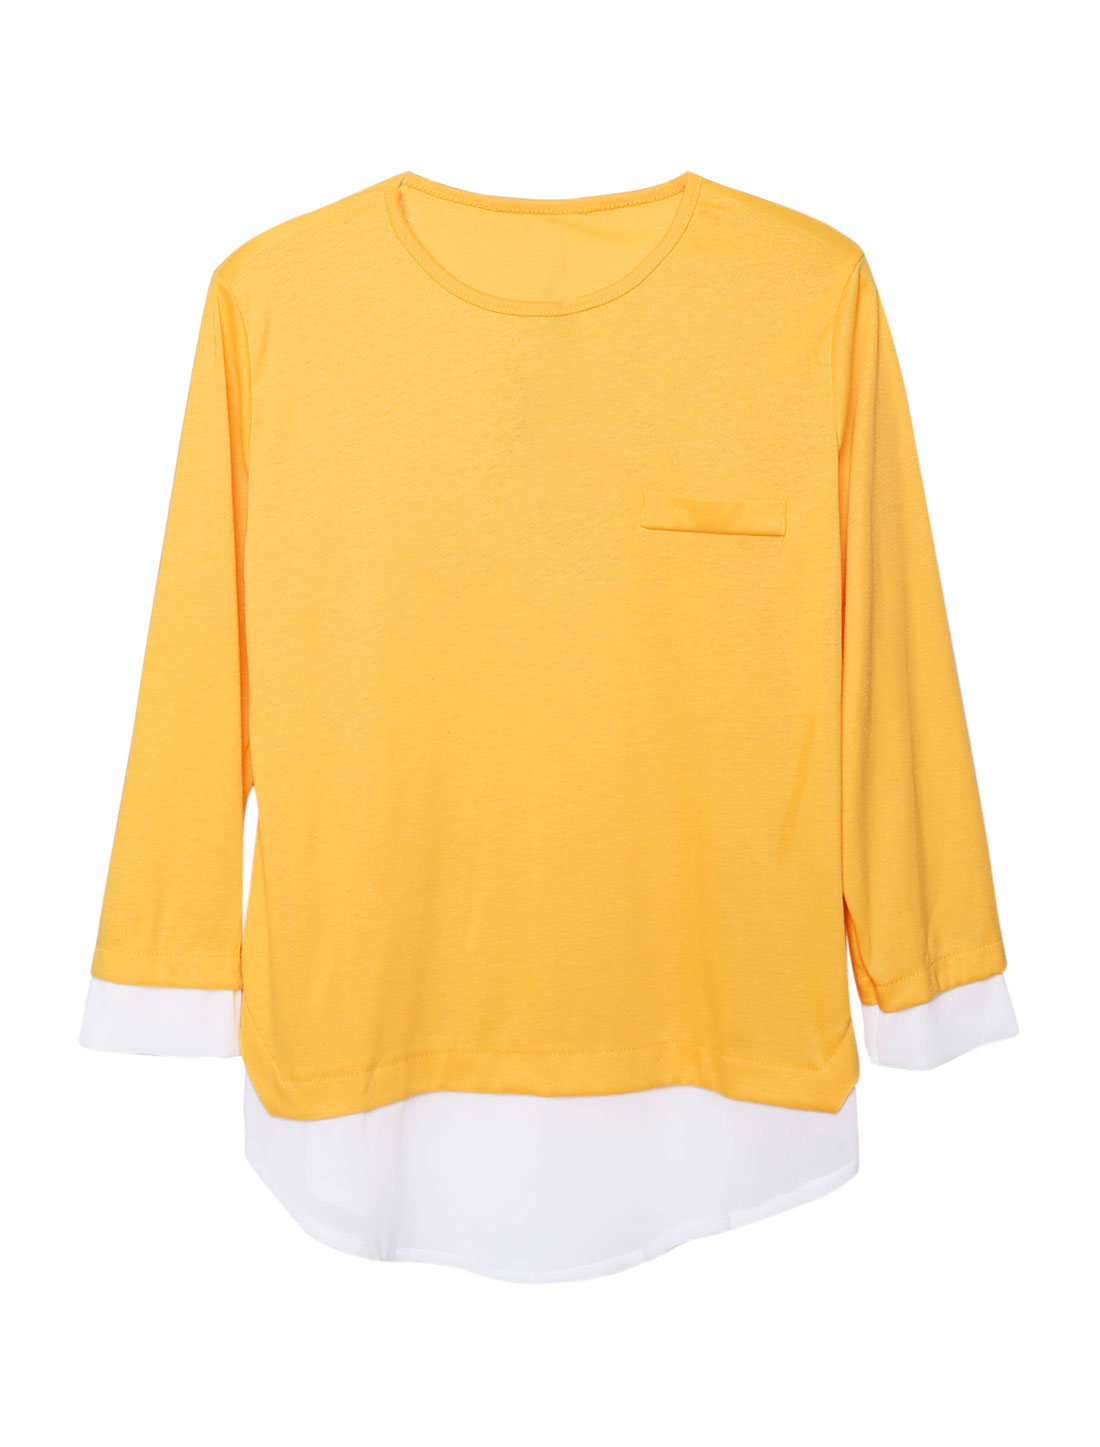 Women Panel Design Layered Shirts Tunic Shirt Yellow M